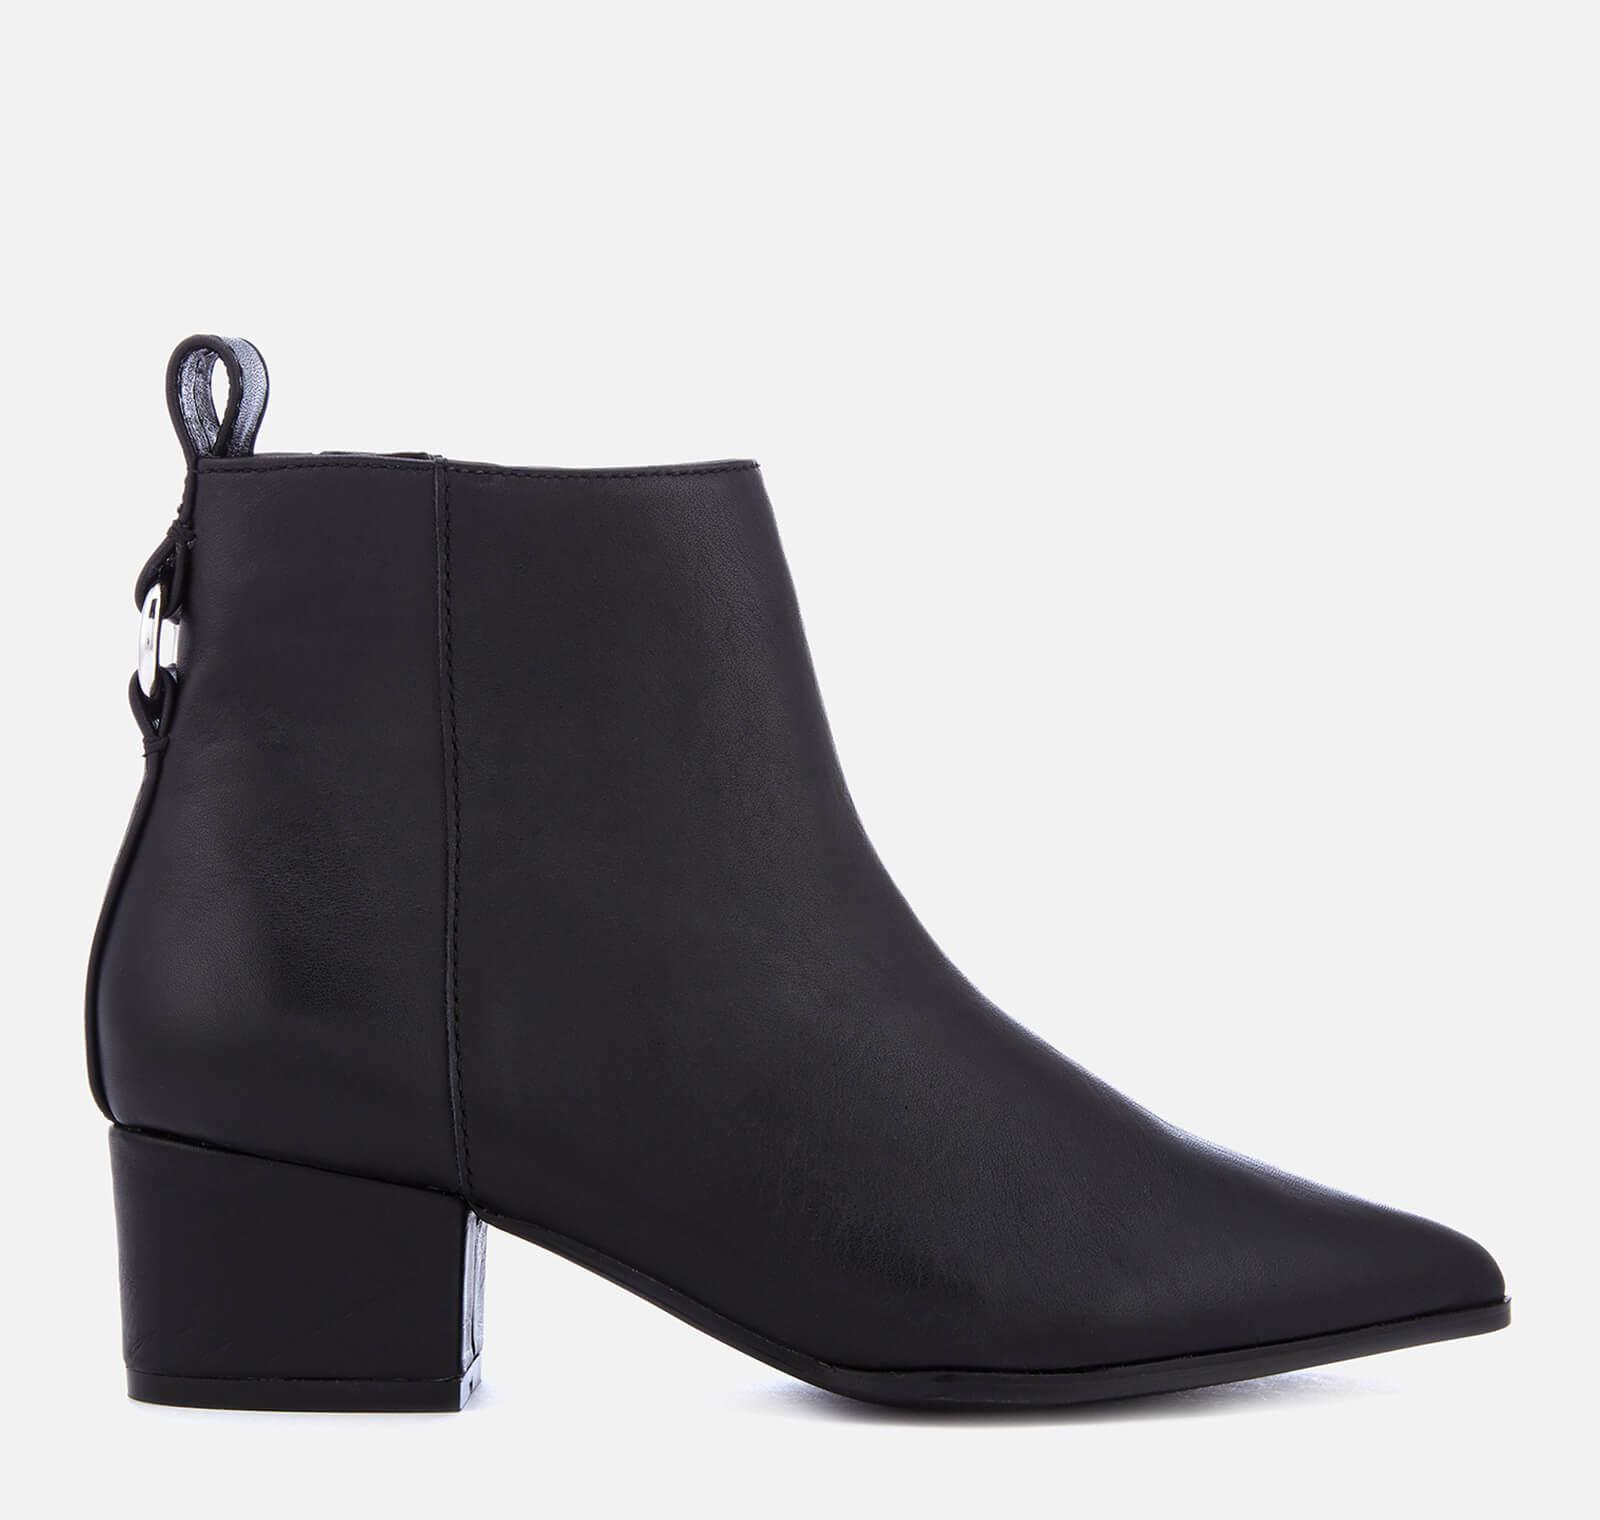 79998a61ad6 Lyst - Steve Madden Clover Leather Heeled Ankle Boots in Black ...